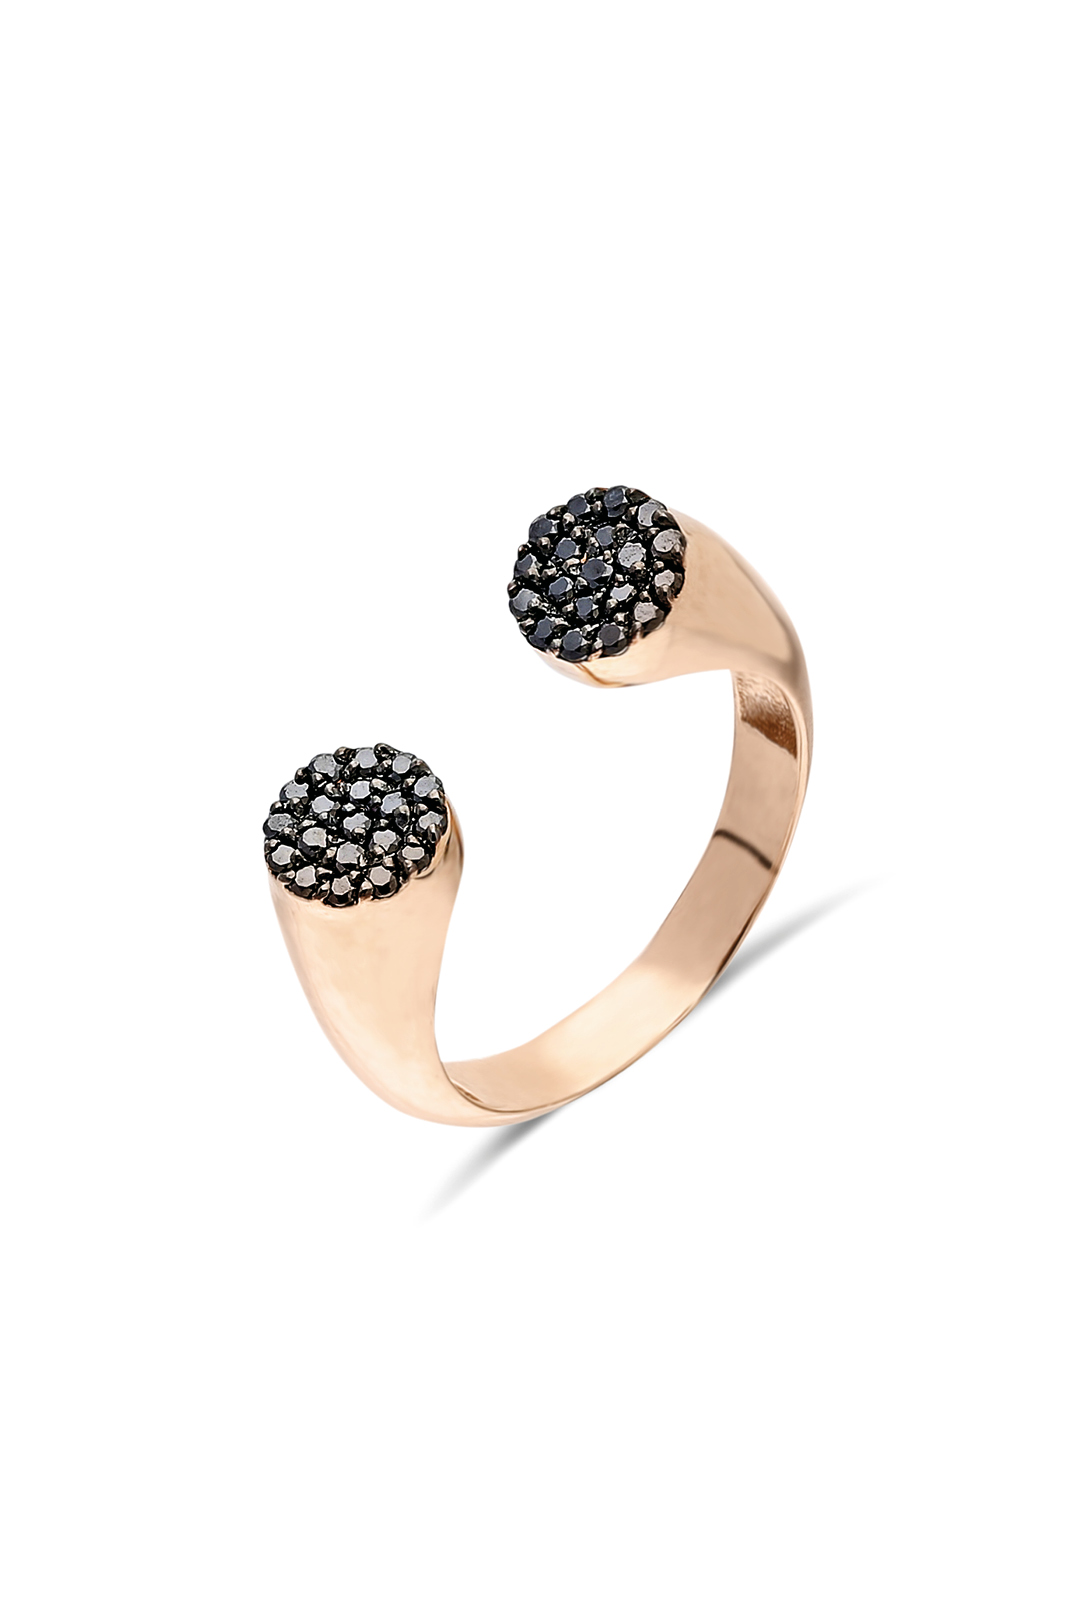 DOUBLE SIDE BLACK DIAMOND RING